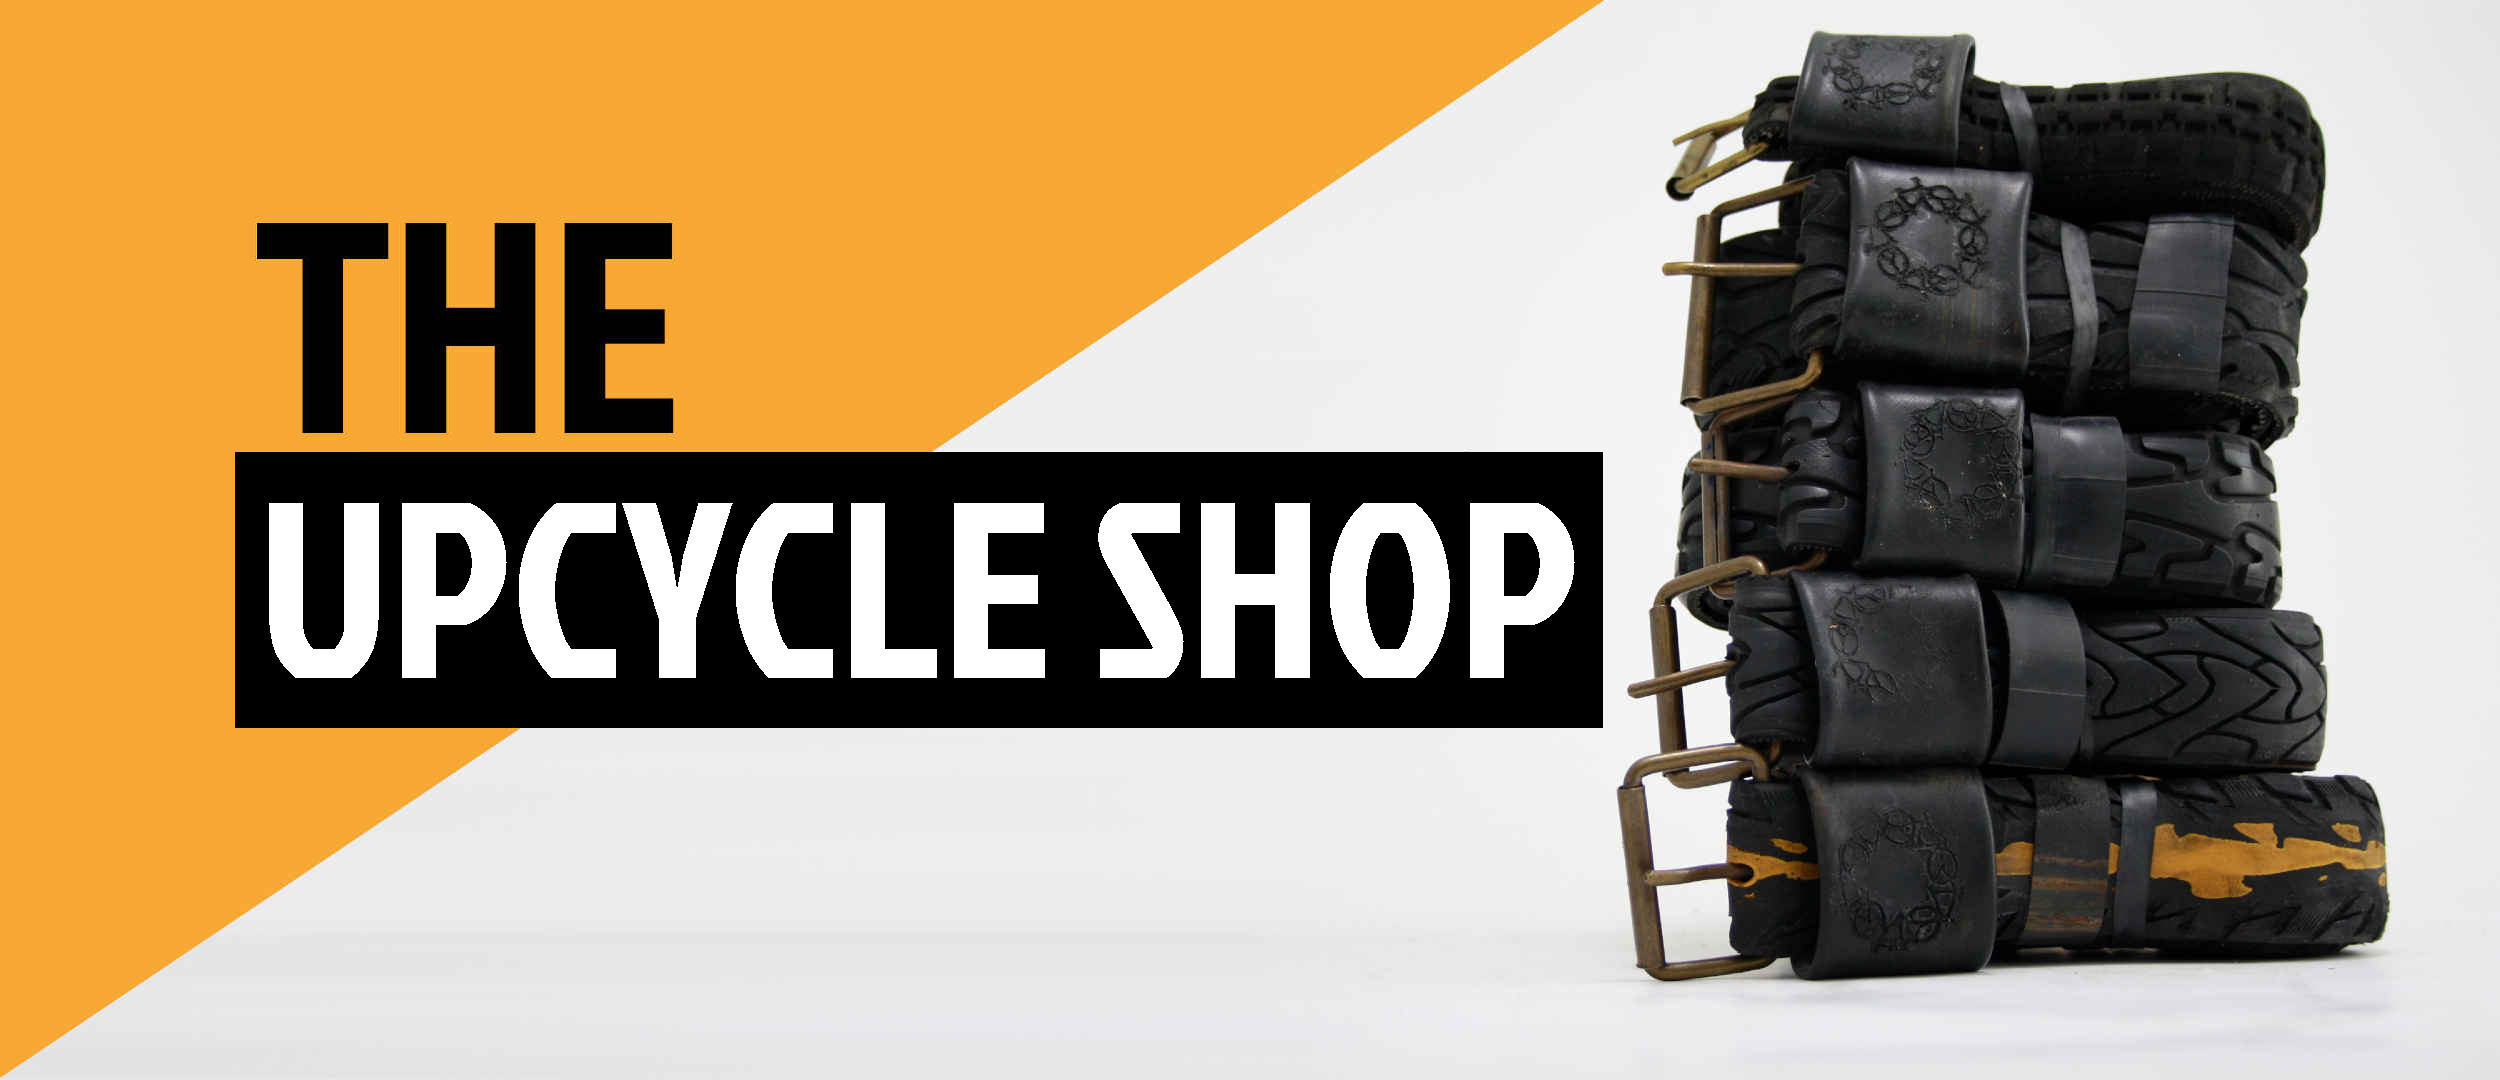 The Upcycle Shop, Upcycled Gifts